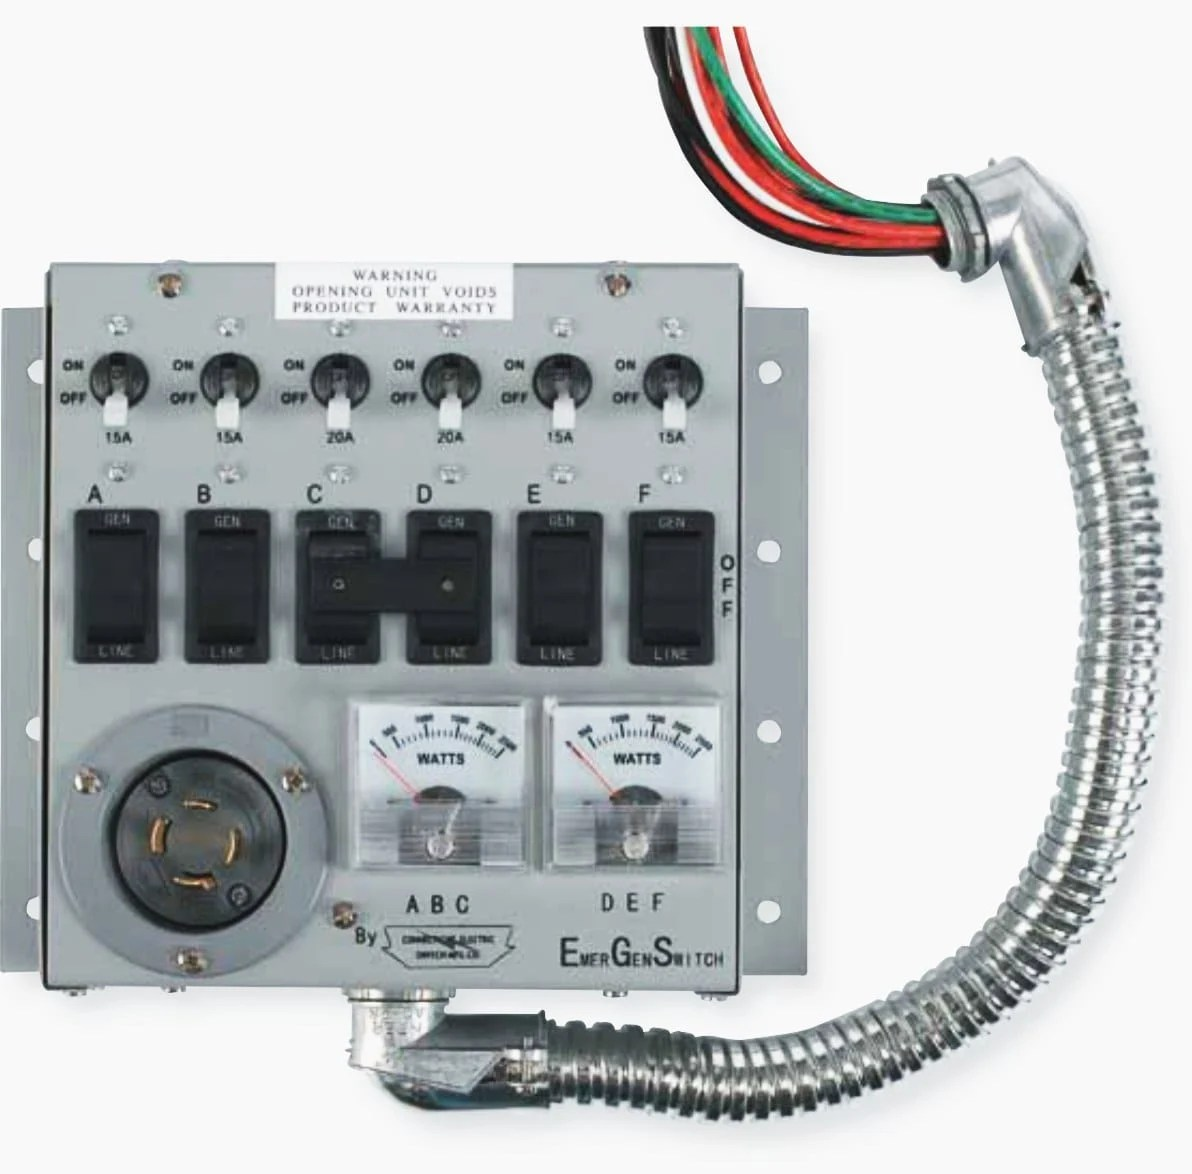 how to wire a generator transfer switch diagram wiring position rv 7 pin install manual for backup system in 16 steps switches require an operator change the power source while automatic detect loss of start back up